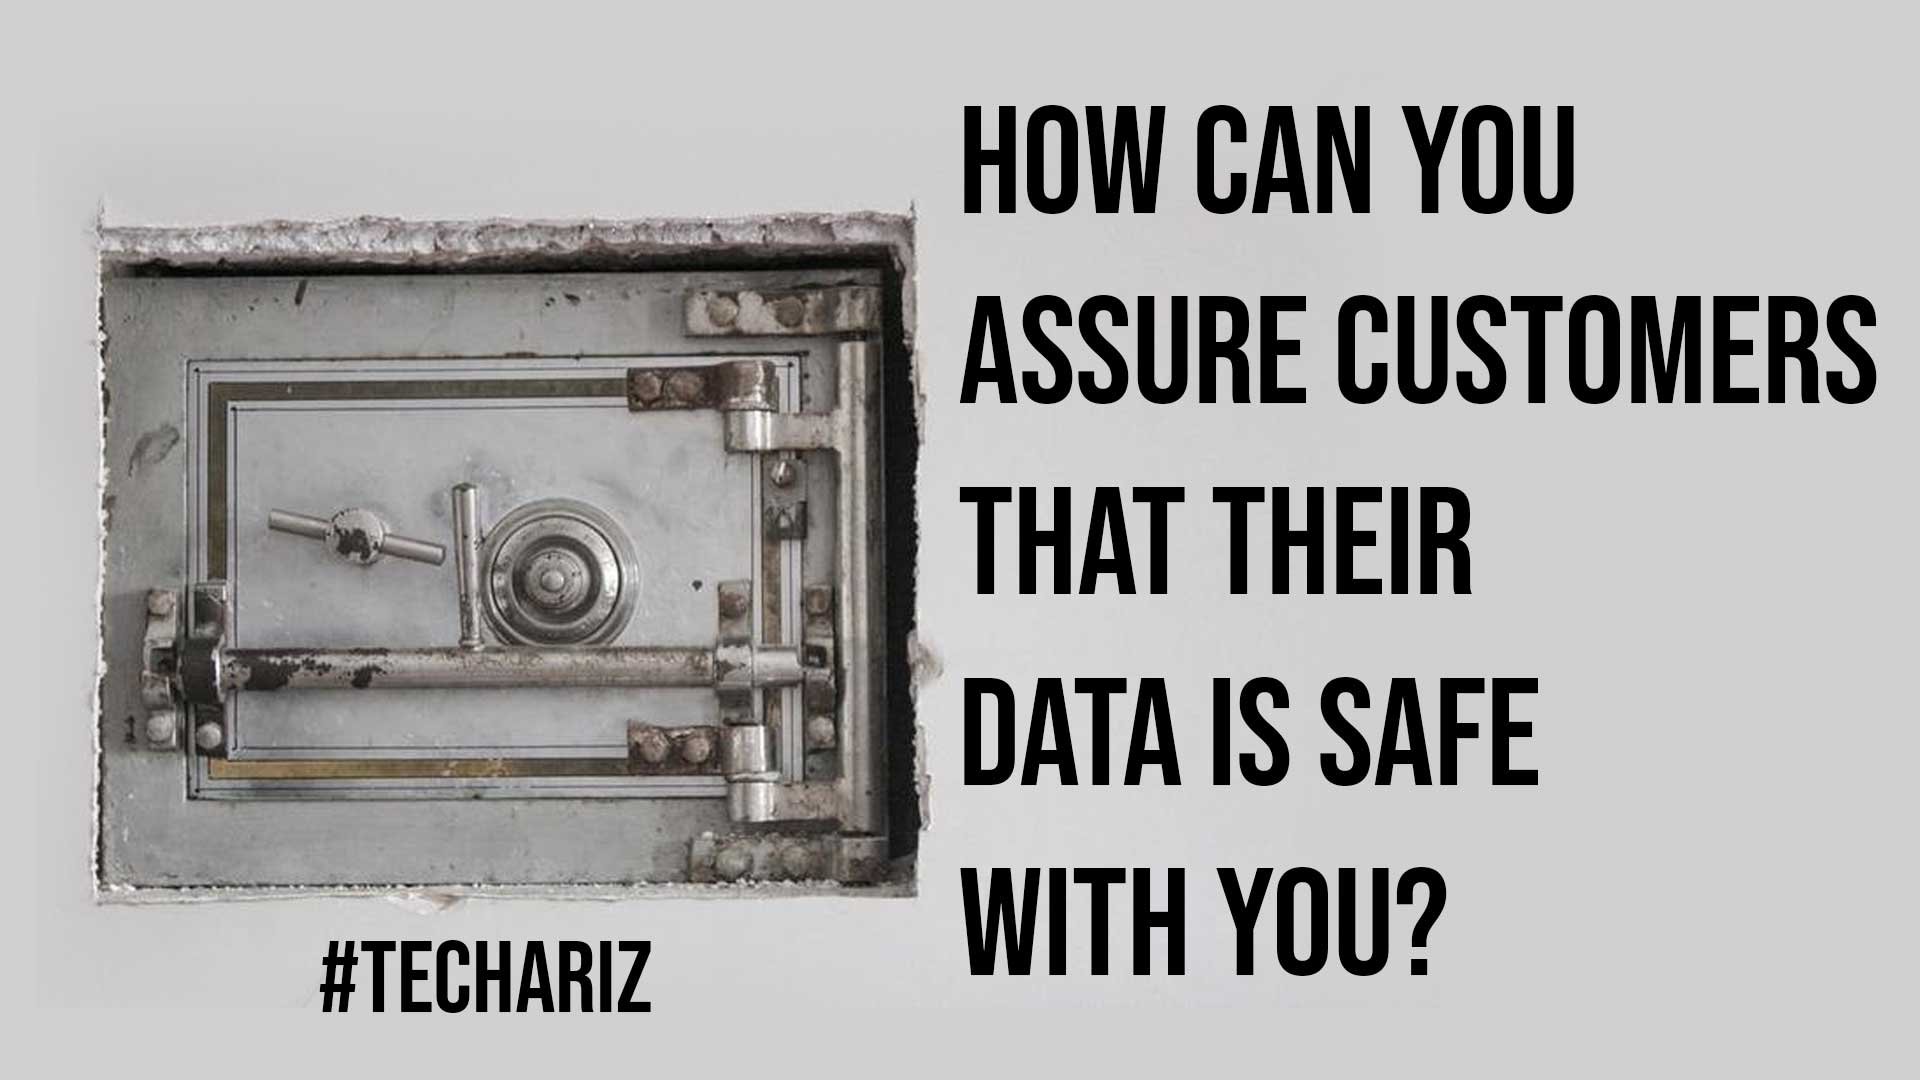 How Can You Assure Customers That Their Data Is Safe With You?